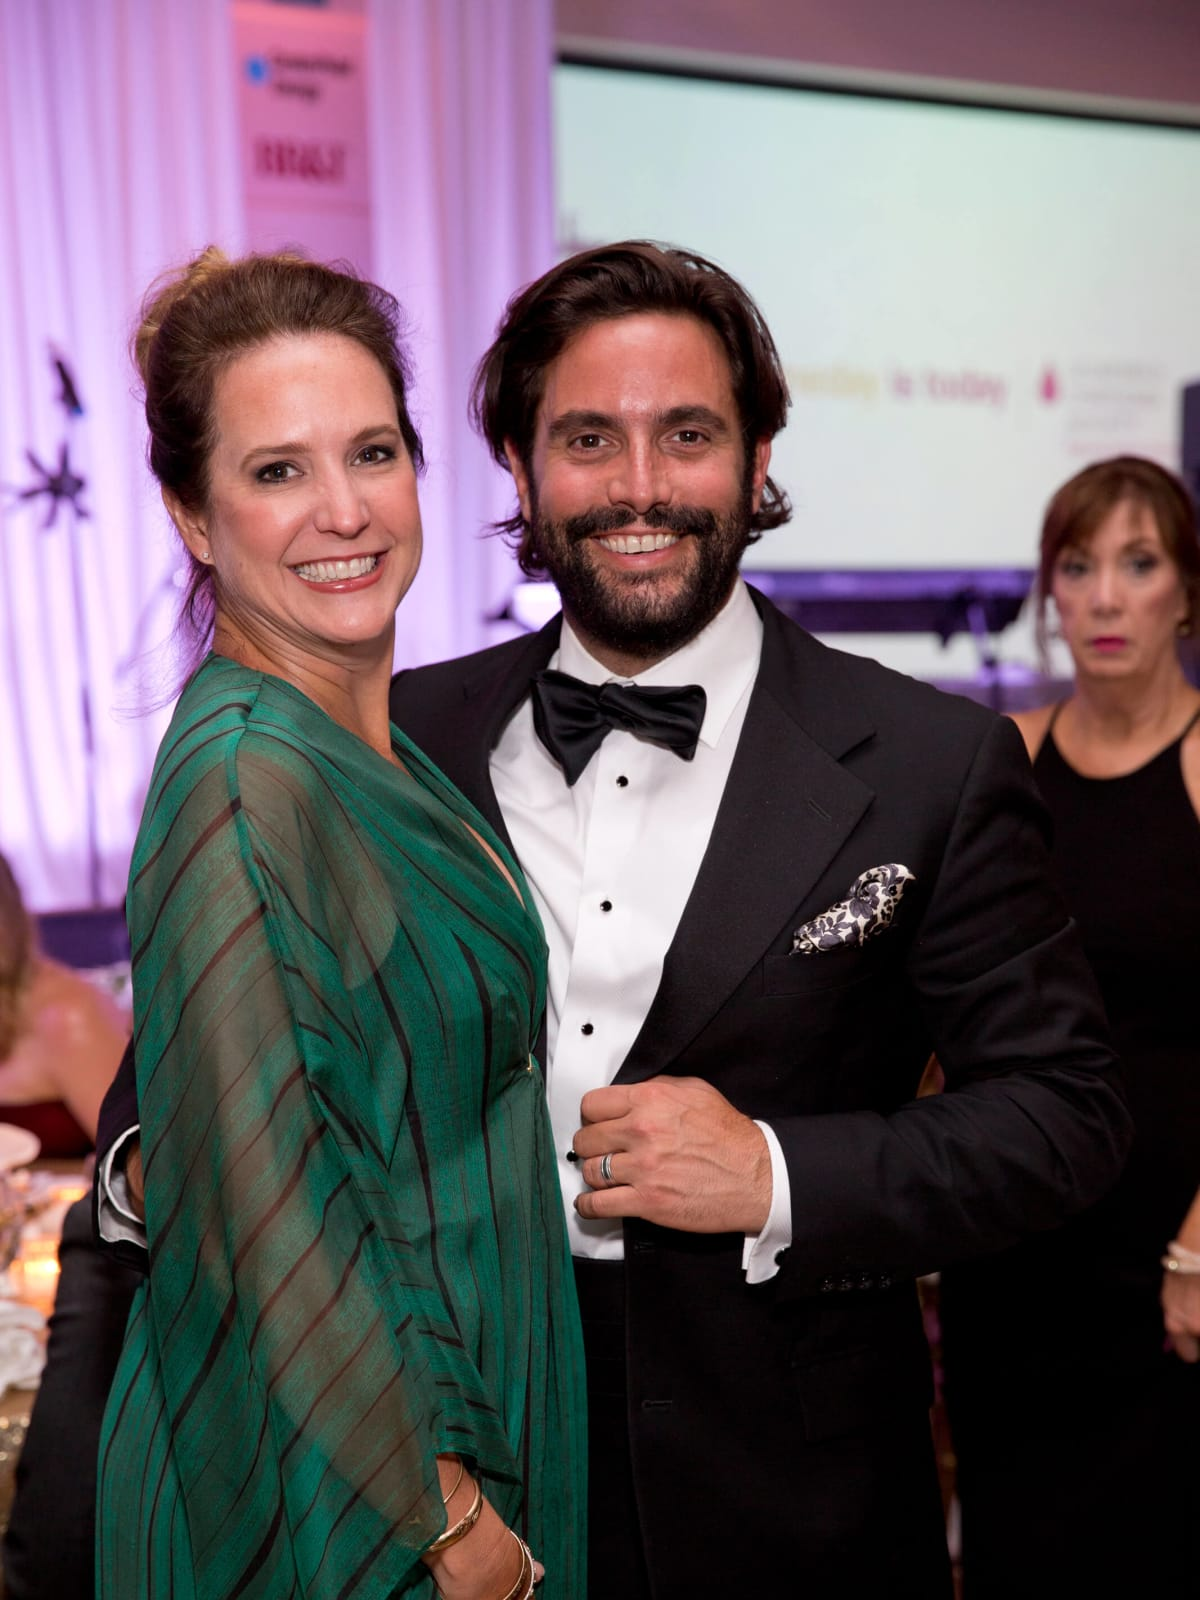 Leukemia & Lymphoma Society gala, 4/16, Tina gobernale, Sam Governale